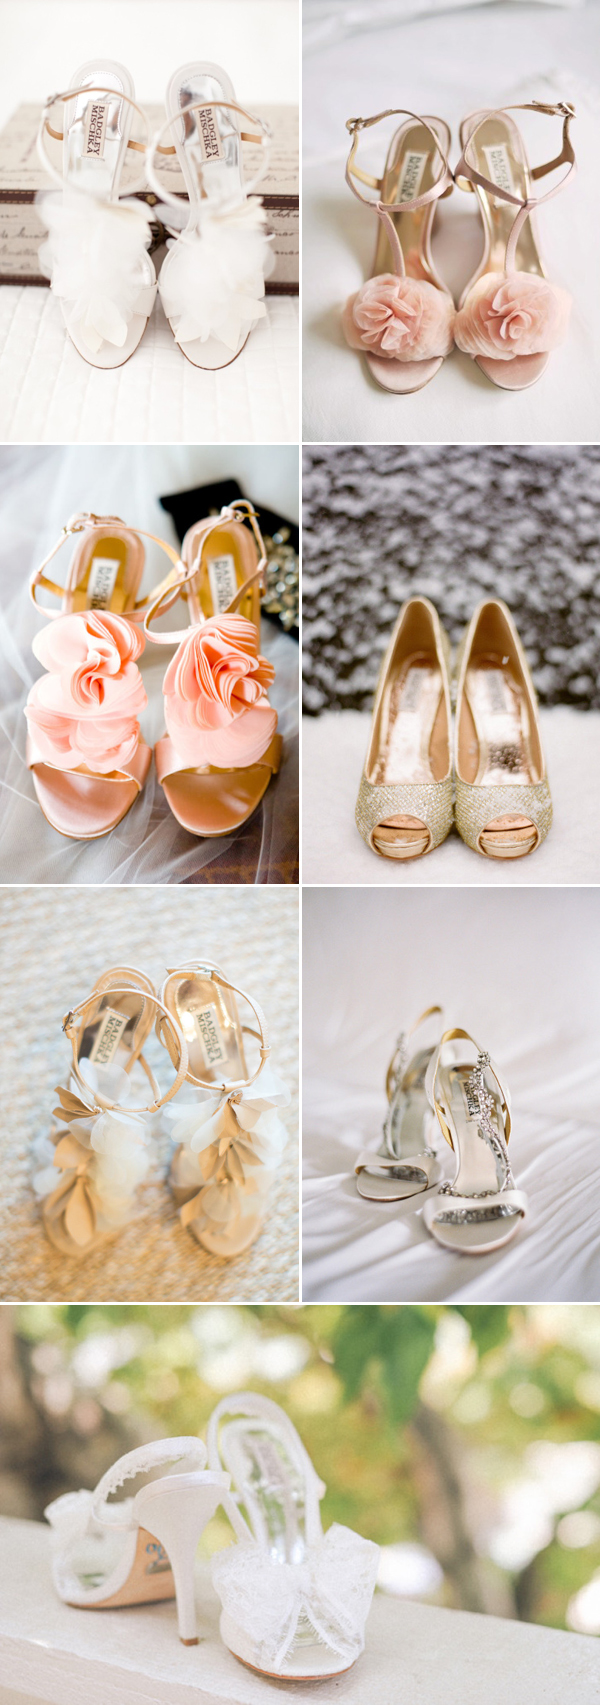 shoes01-Badgley Mischka